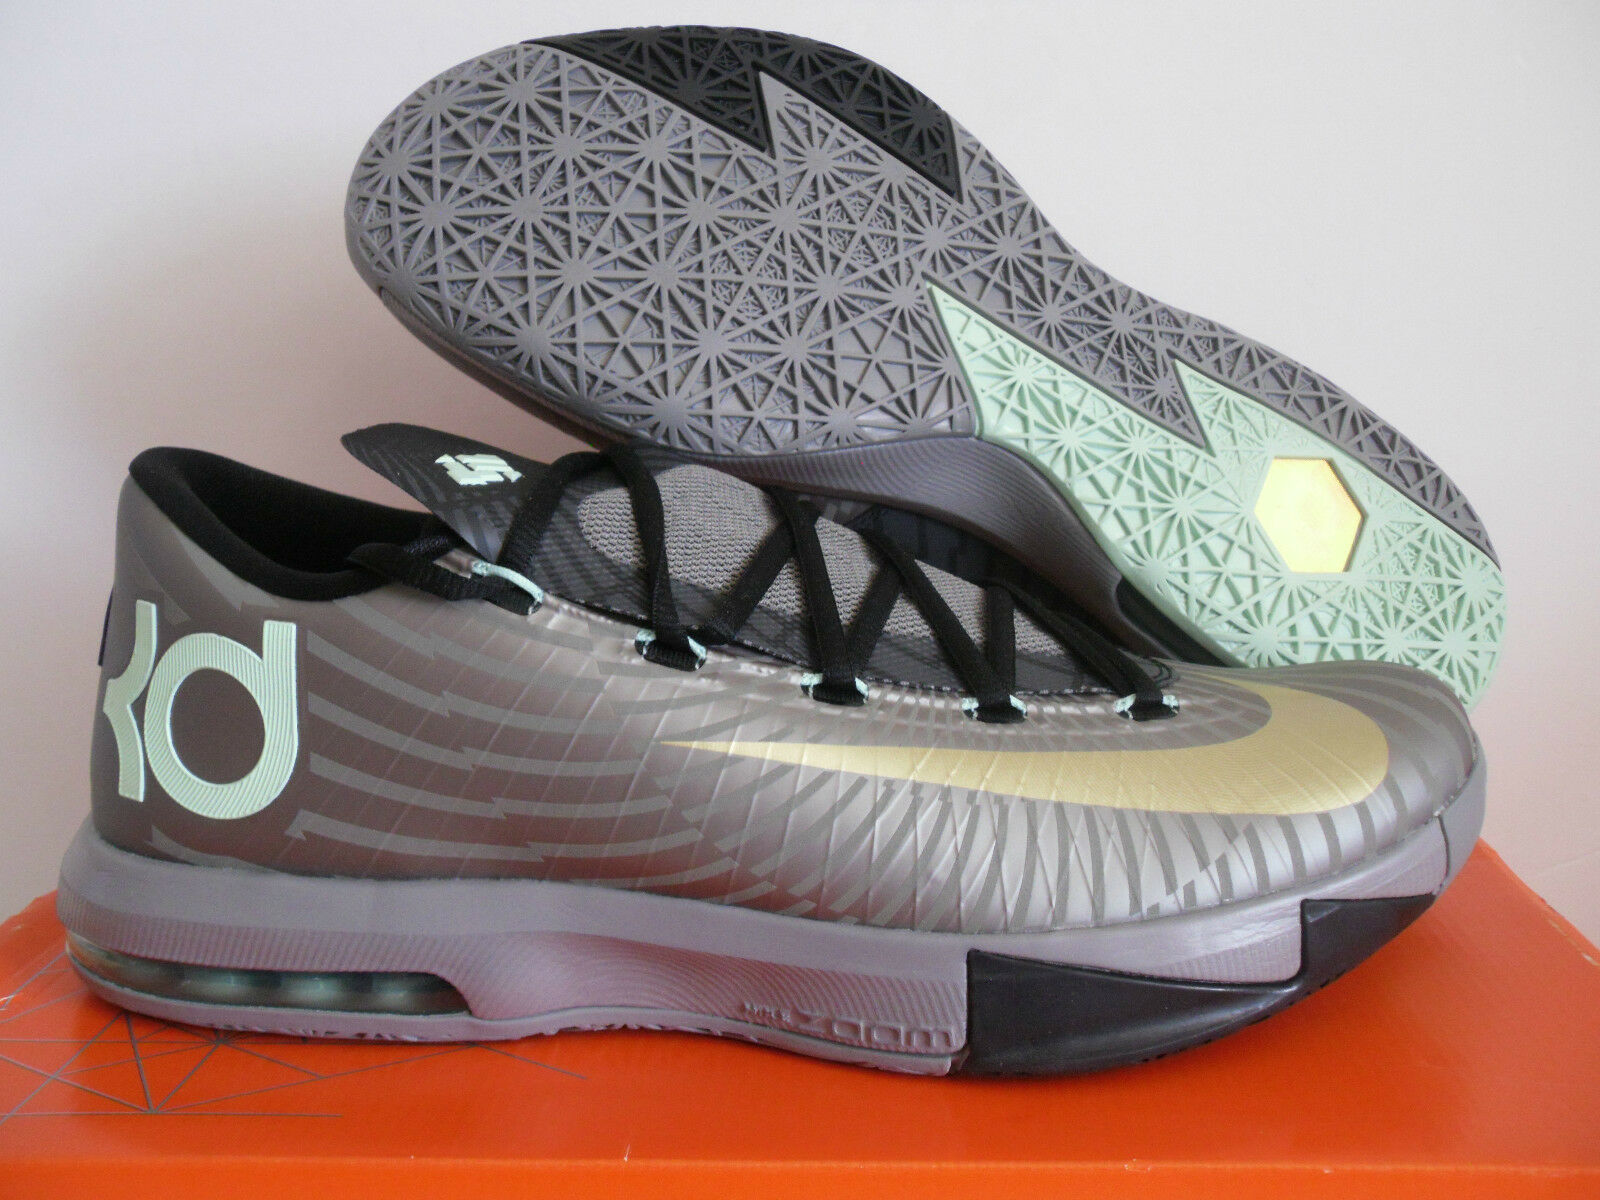 NIKE KD VI PRECISION TIMING PEWTER-MET GOLD-BLACK SZ 14 [599424-003]